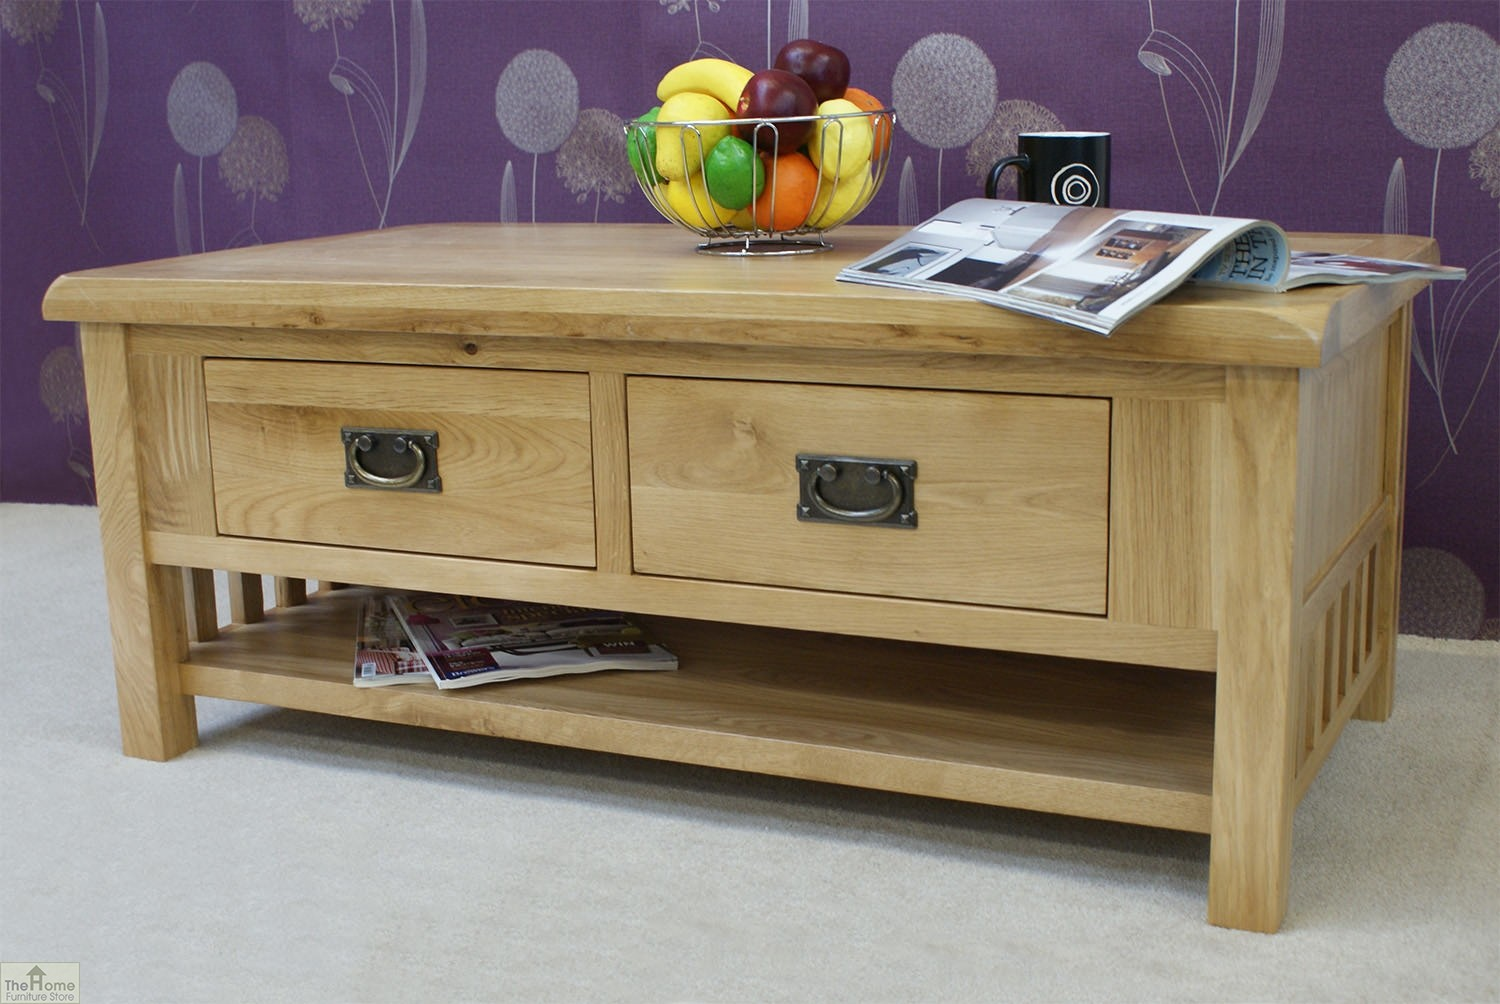 Farmhouse Oak 2 Drawer Coffee Table The Home Furniture Store